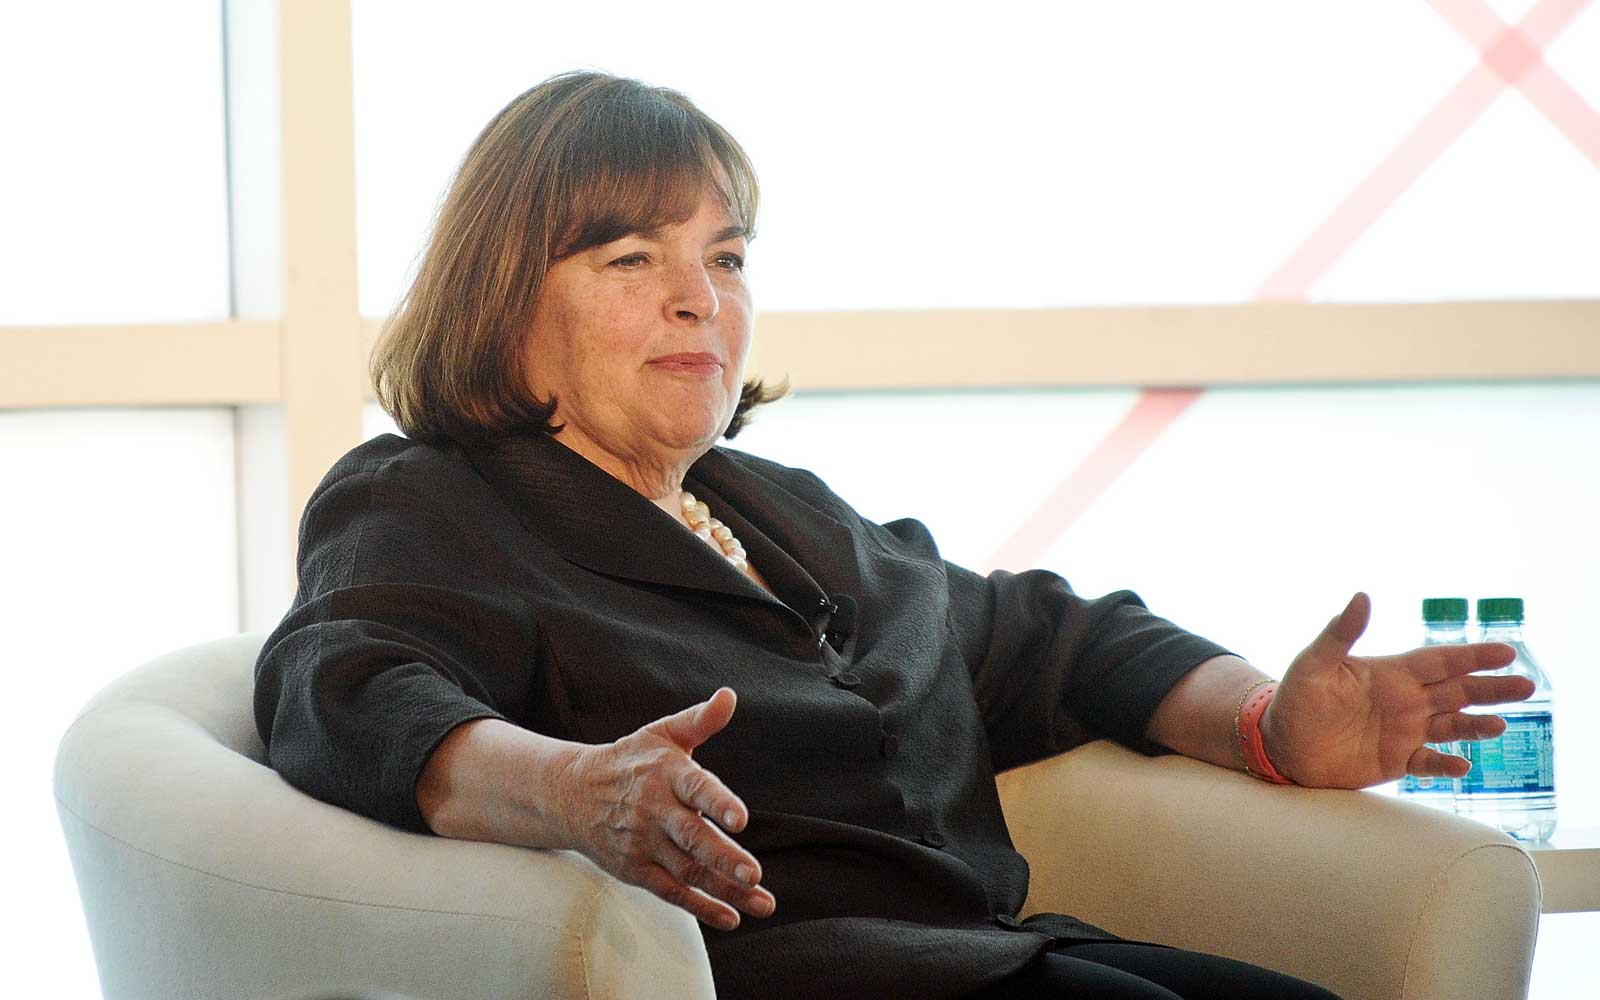 Ina Garten Has Eaten the Same Breakfast Every Single Day for 10 Years